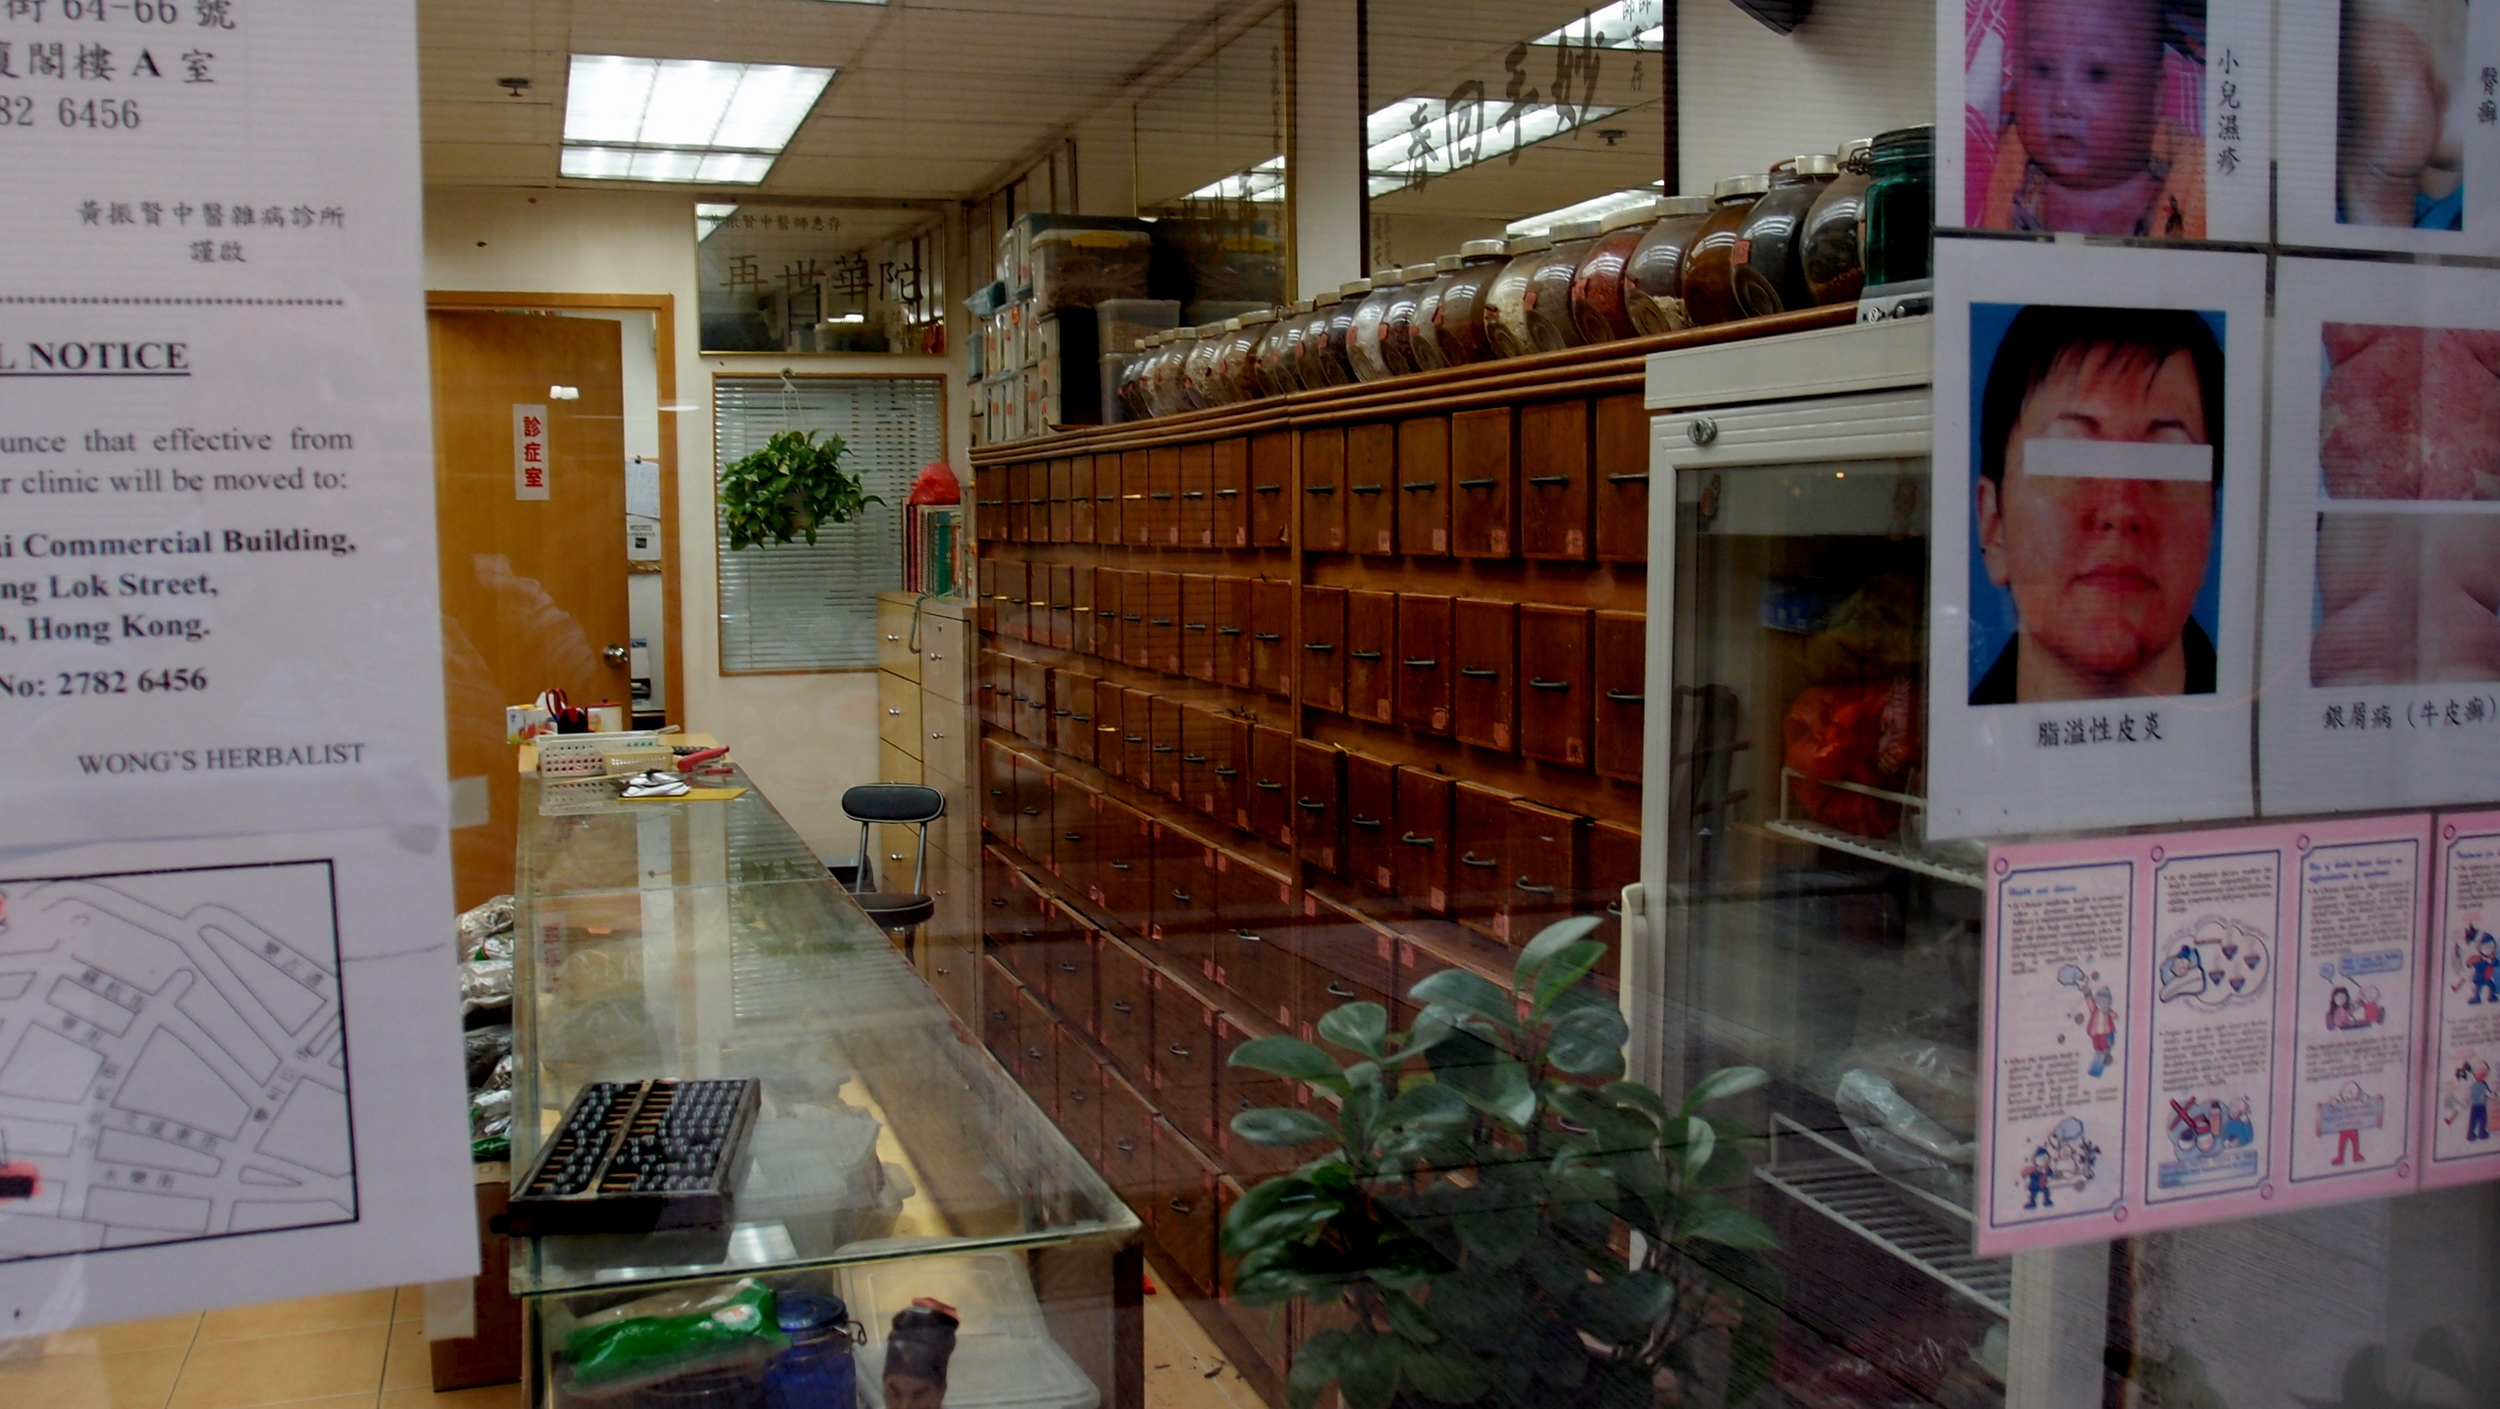 The cure for every disease in the world today can be found in this traditional Chinese Medicine shop